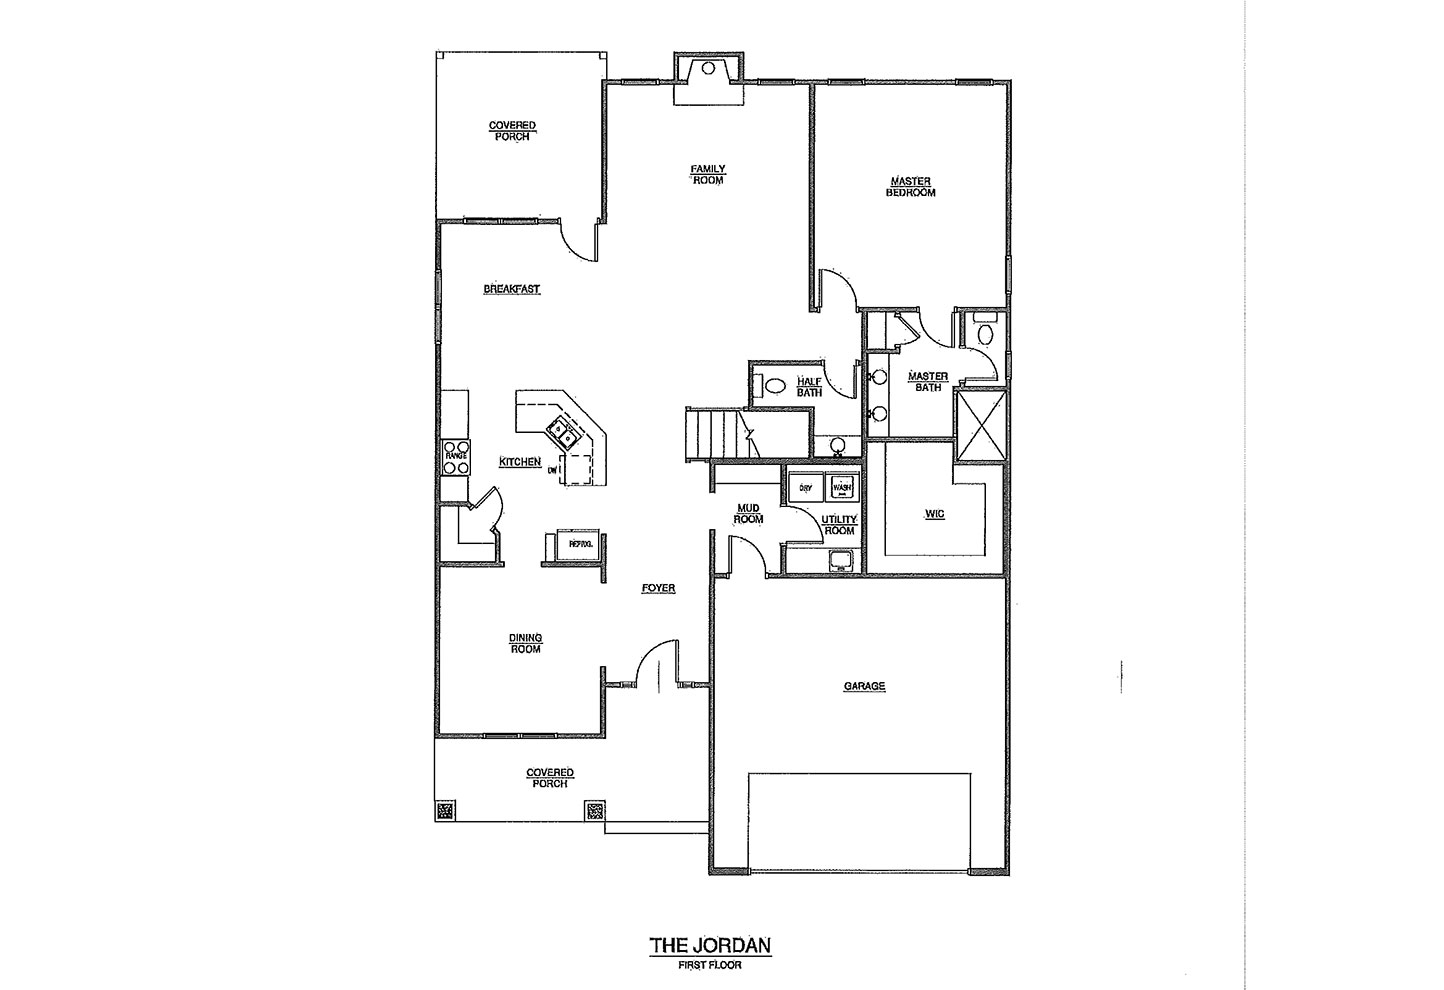 Product also Hny 0 033447 also House Of The Week in addition Milano 3 further Two Car Garage Designs Craftsman Style 2 Car Garage Plan No 572 3behm Design. on lighting for bonus room